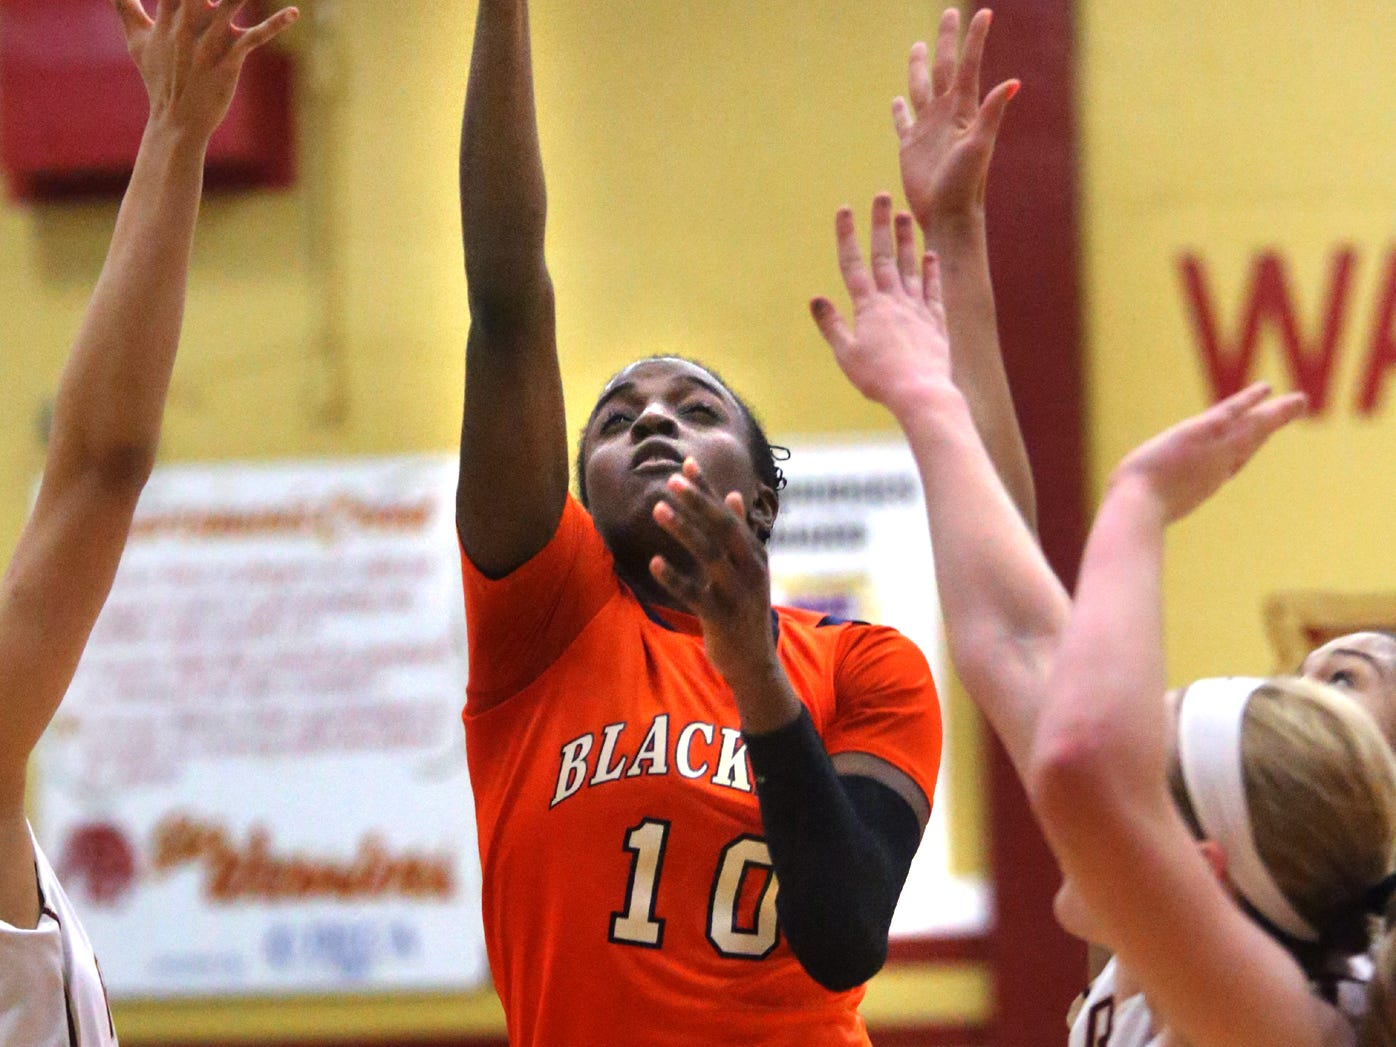 Blackman's MeMe Jackson goes up for a shot during the first half of the game against Riverdale at Riverdale on Friday Jan. 9, 2015.